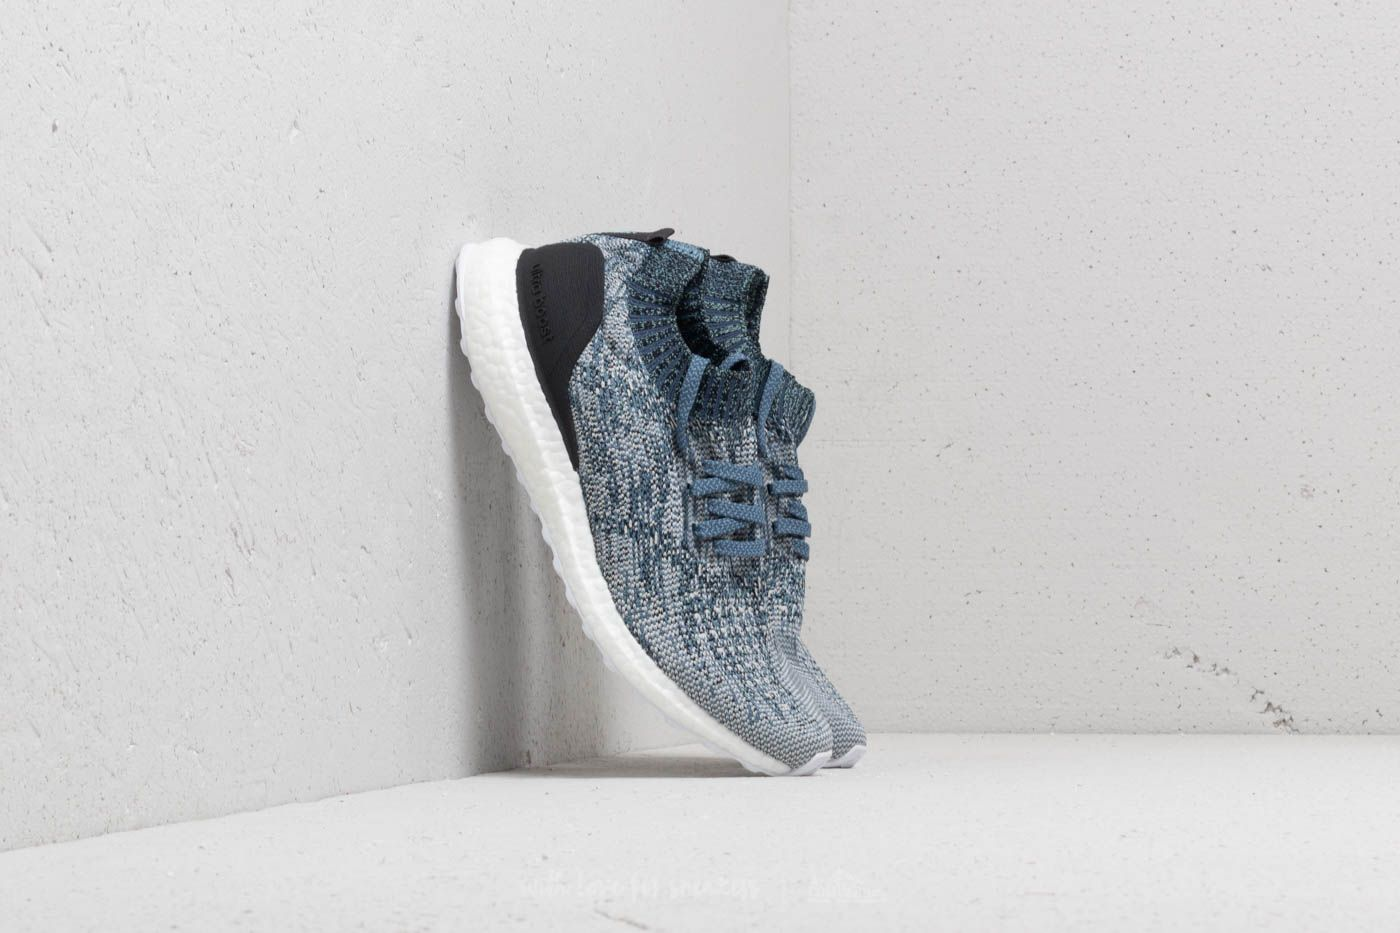 reputable site 1e2e8 55c5b adidas UltraBOOST Uncaged Parley. Raw Grey Chalk Pearl Blue Spirit